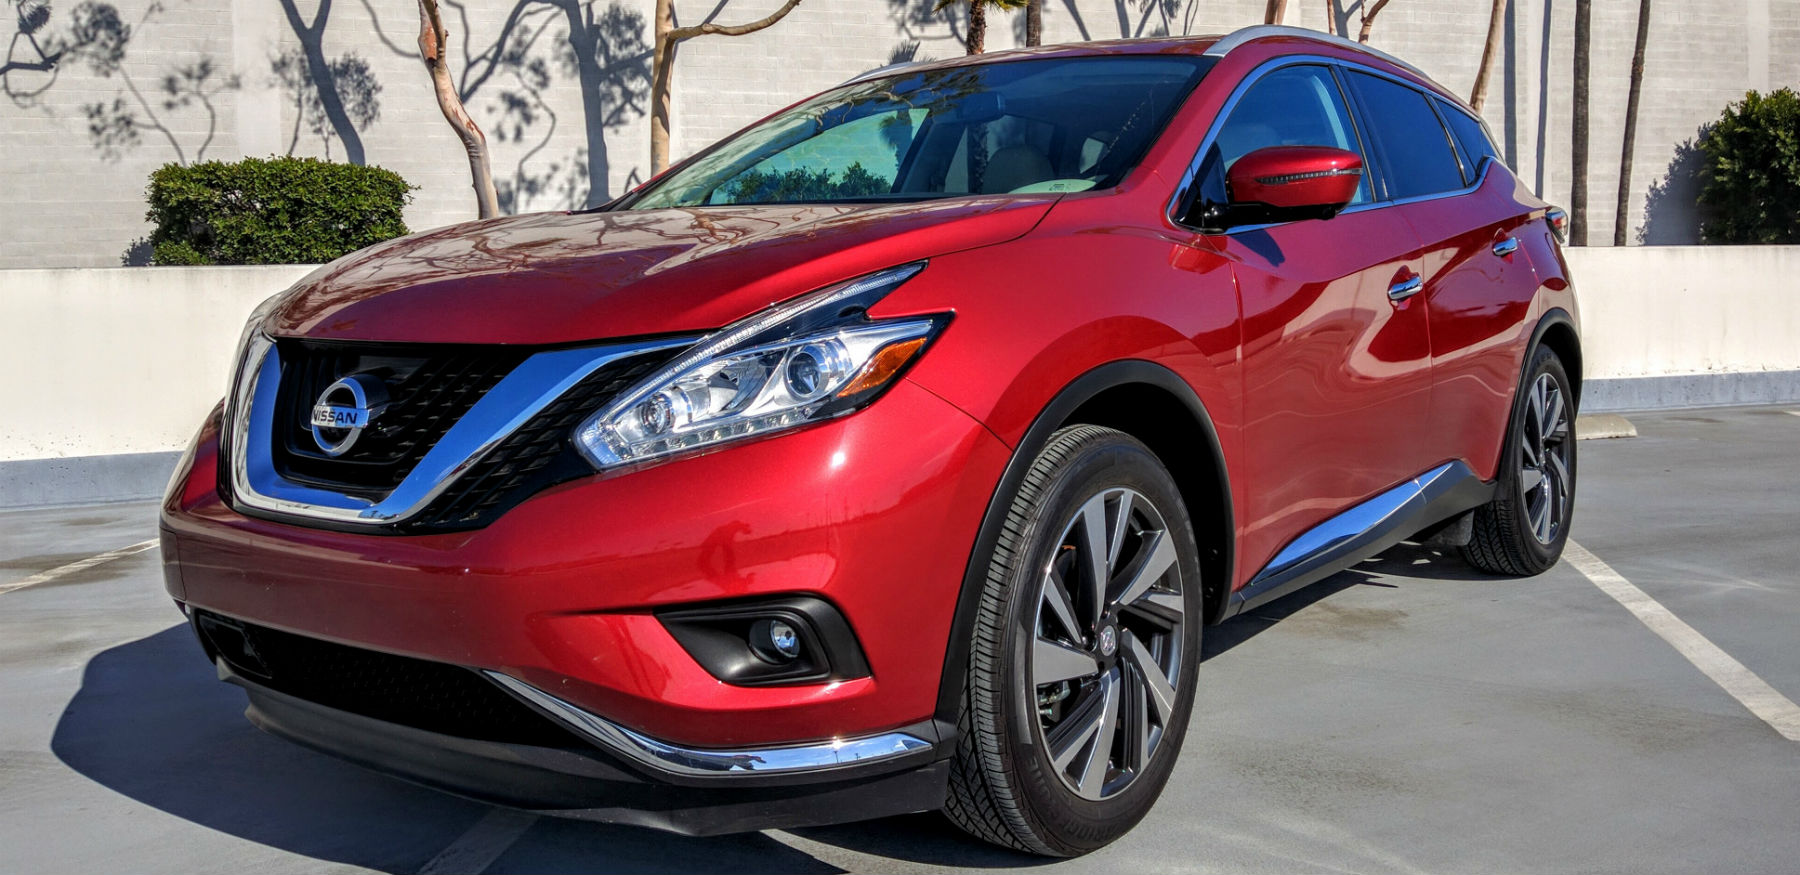 2016 Nissan Murano Style Over Substance The Ignition Blog